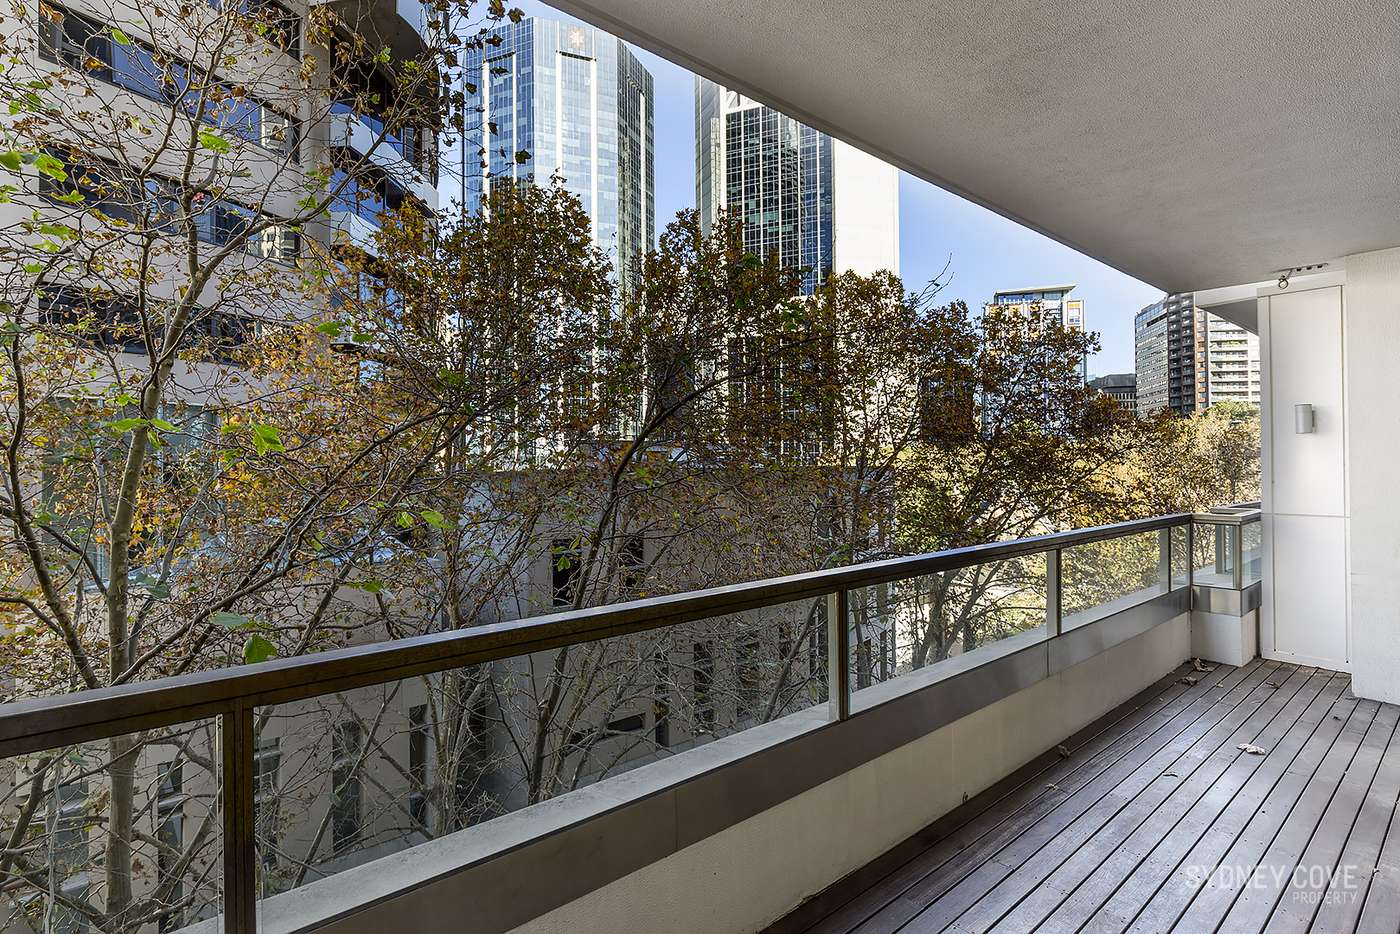 Sixth view of Homely apartment listing, 171 Gloucester St, Sydney NSW 2000